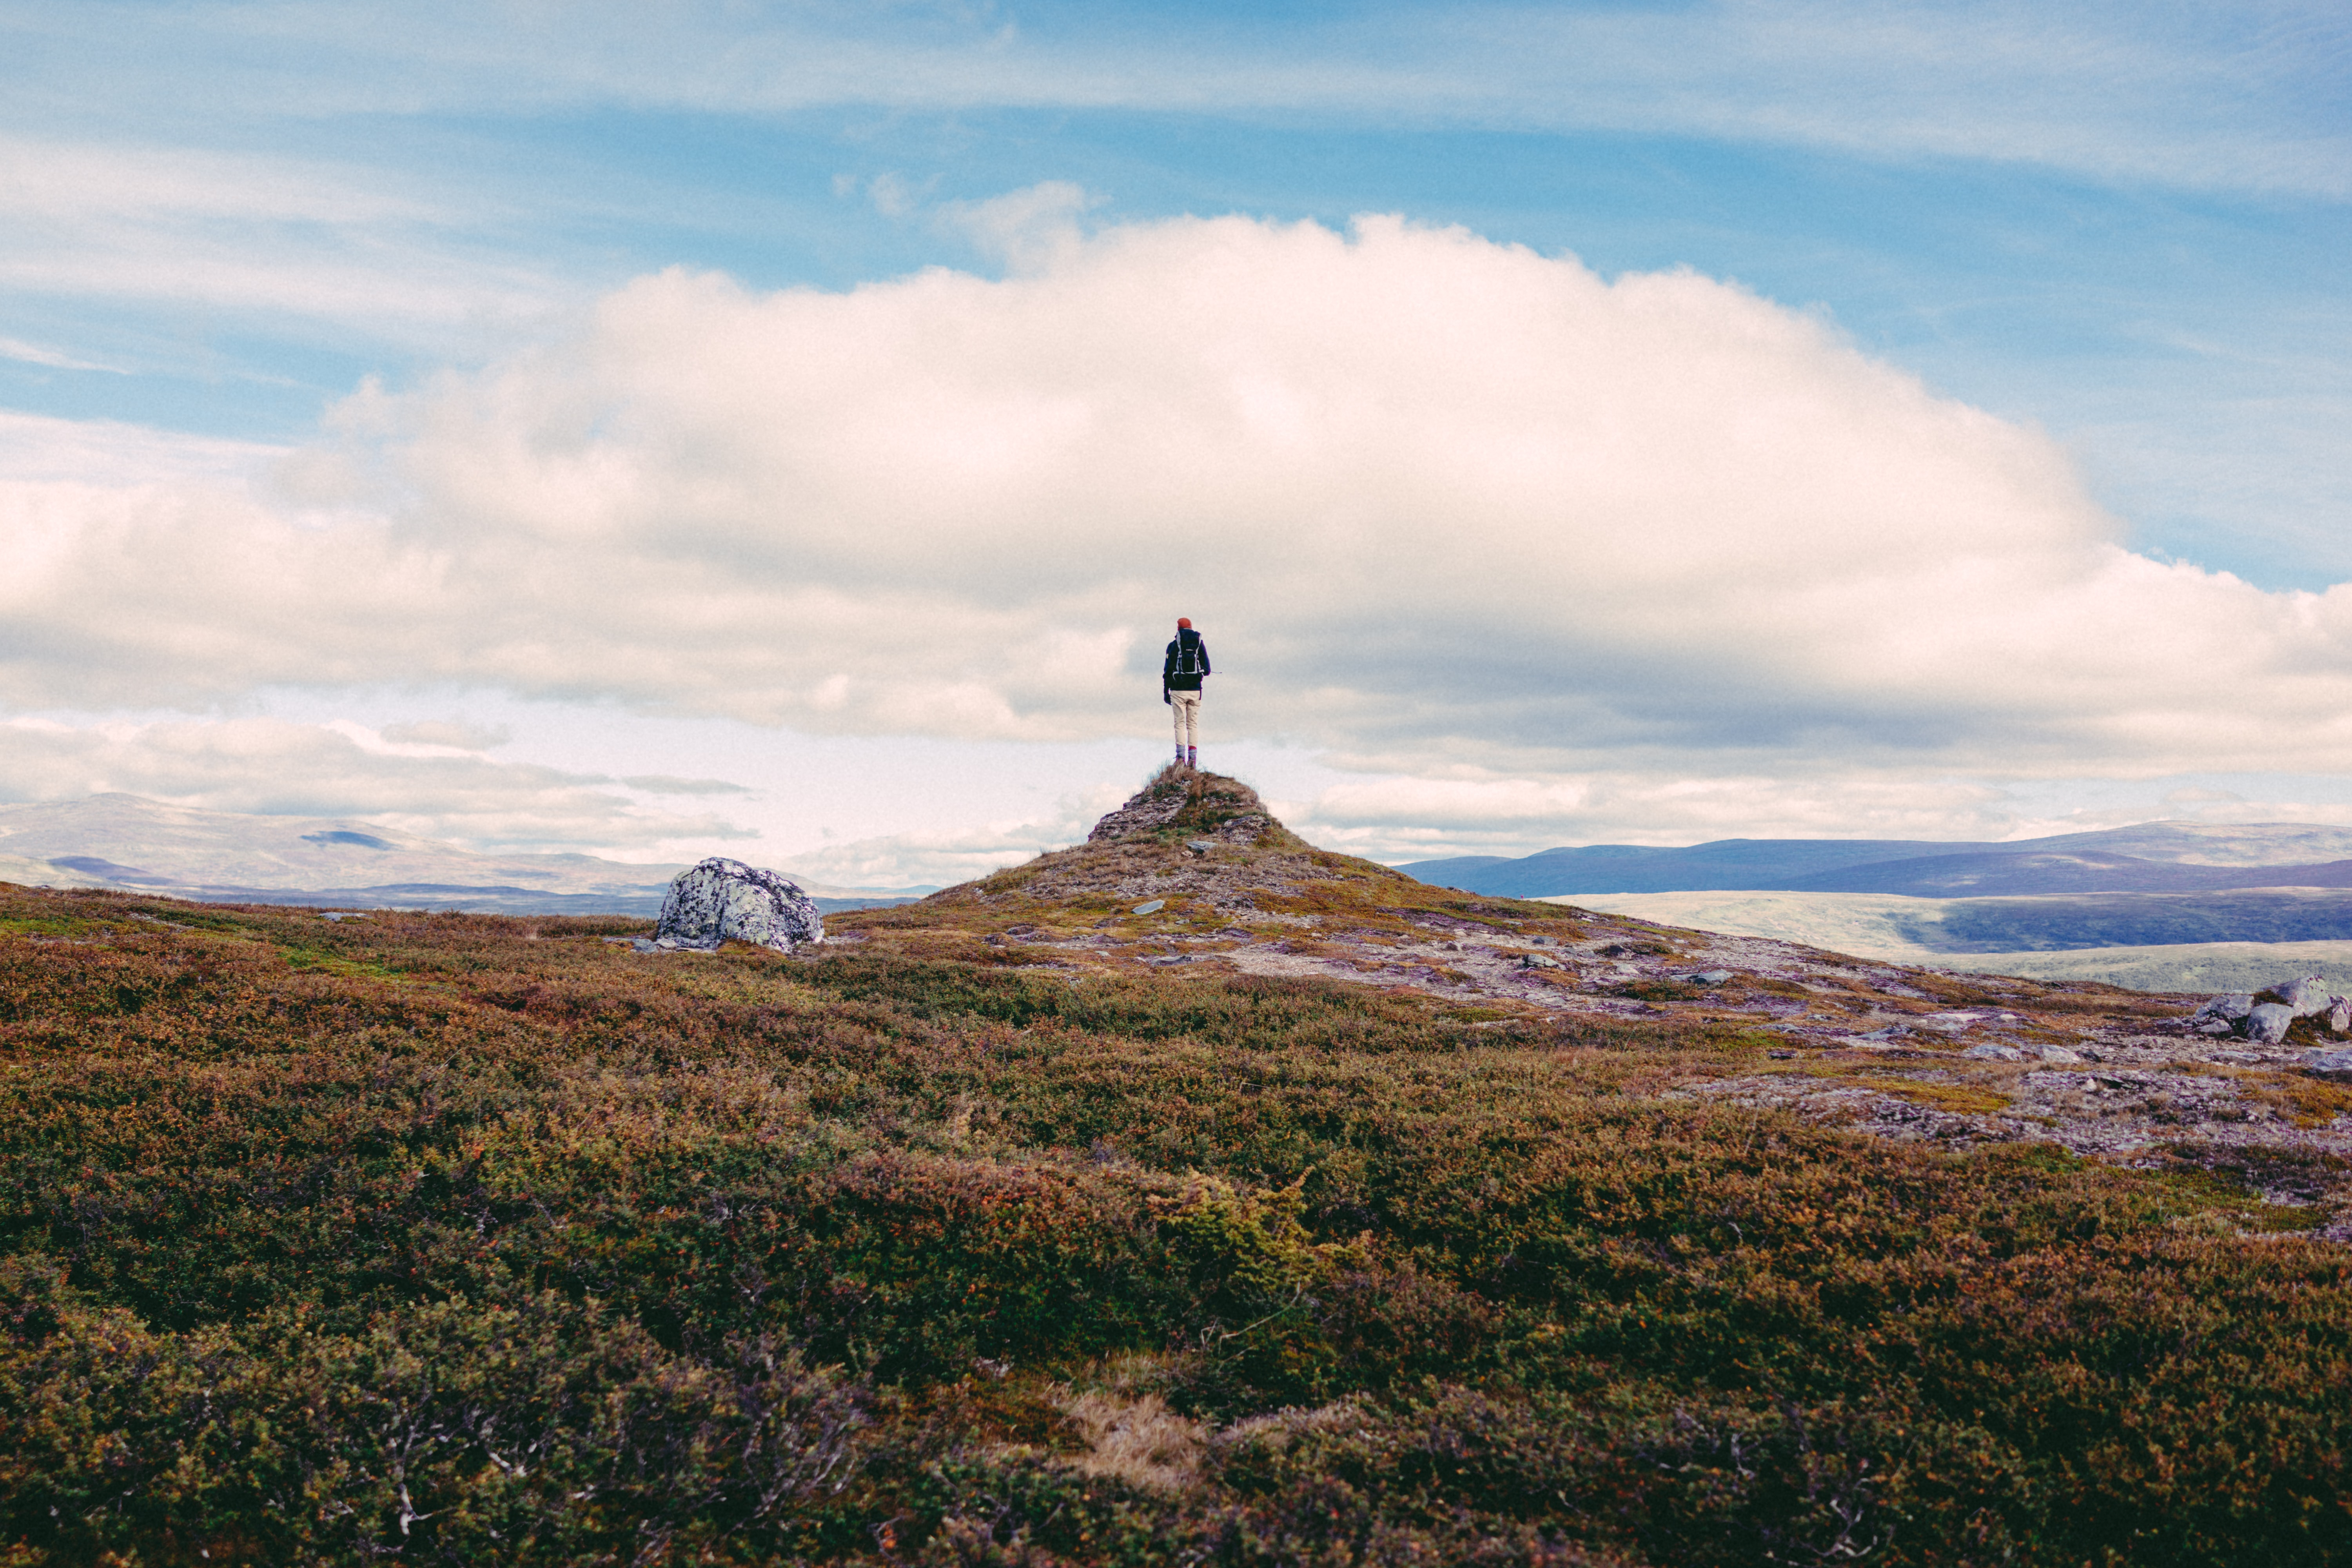 A lone hiker on top of a small rock tower  in a shrub-covered plain in Helagsfjället